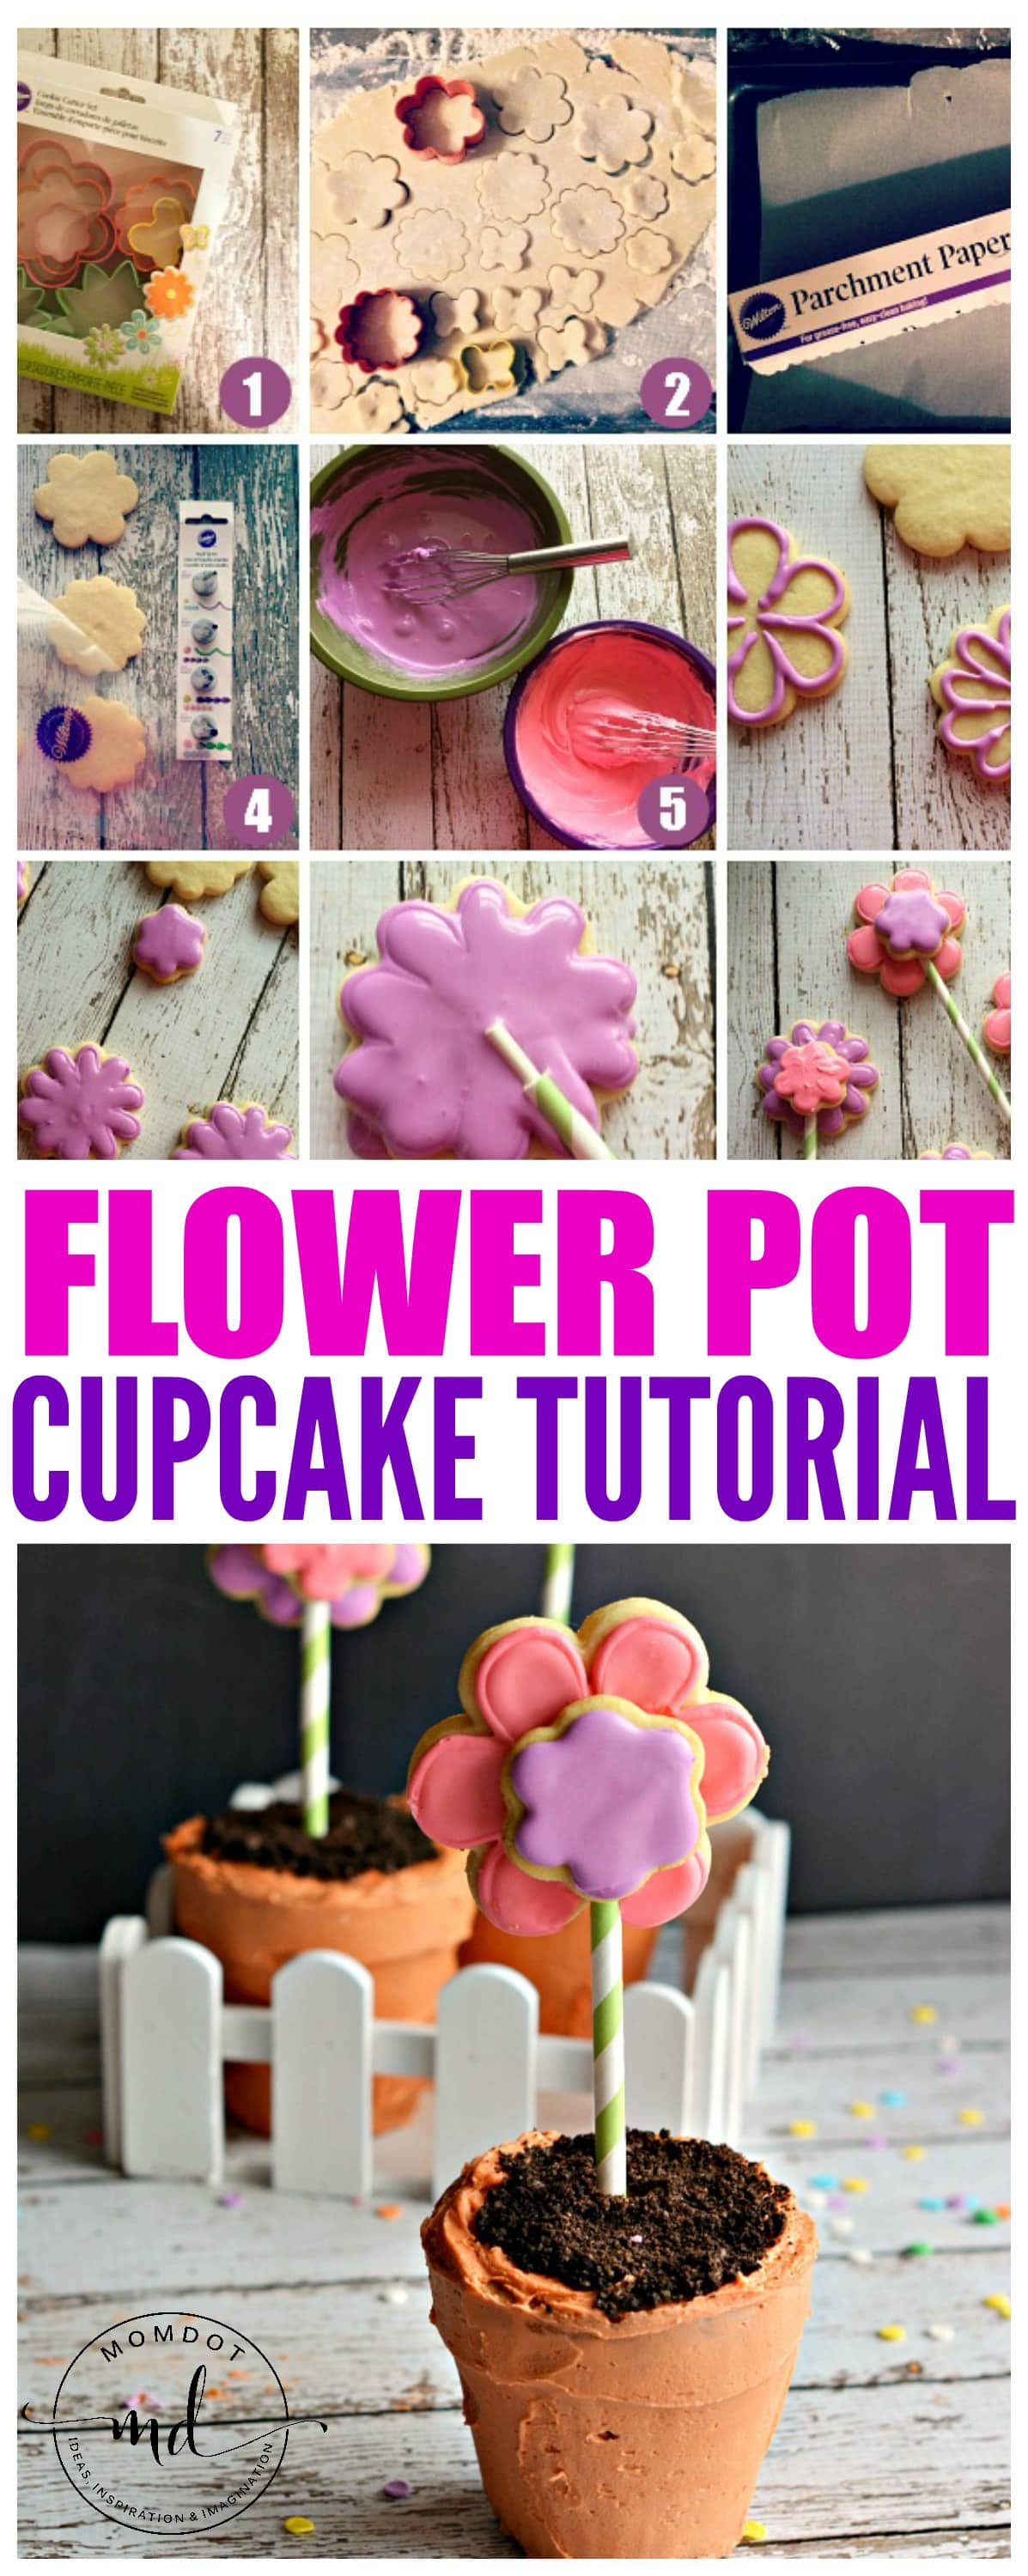 Flower Pot Cupcake Tutorial, Make standout cupcakes with this step by step flower cupcake tutorial, adorable